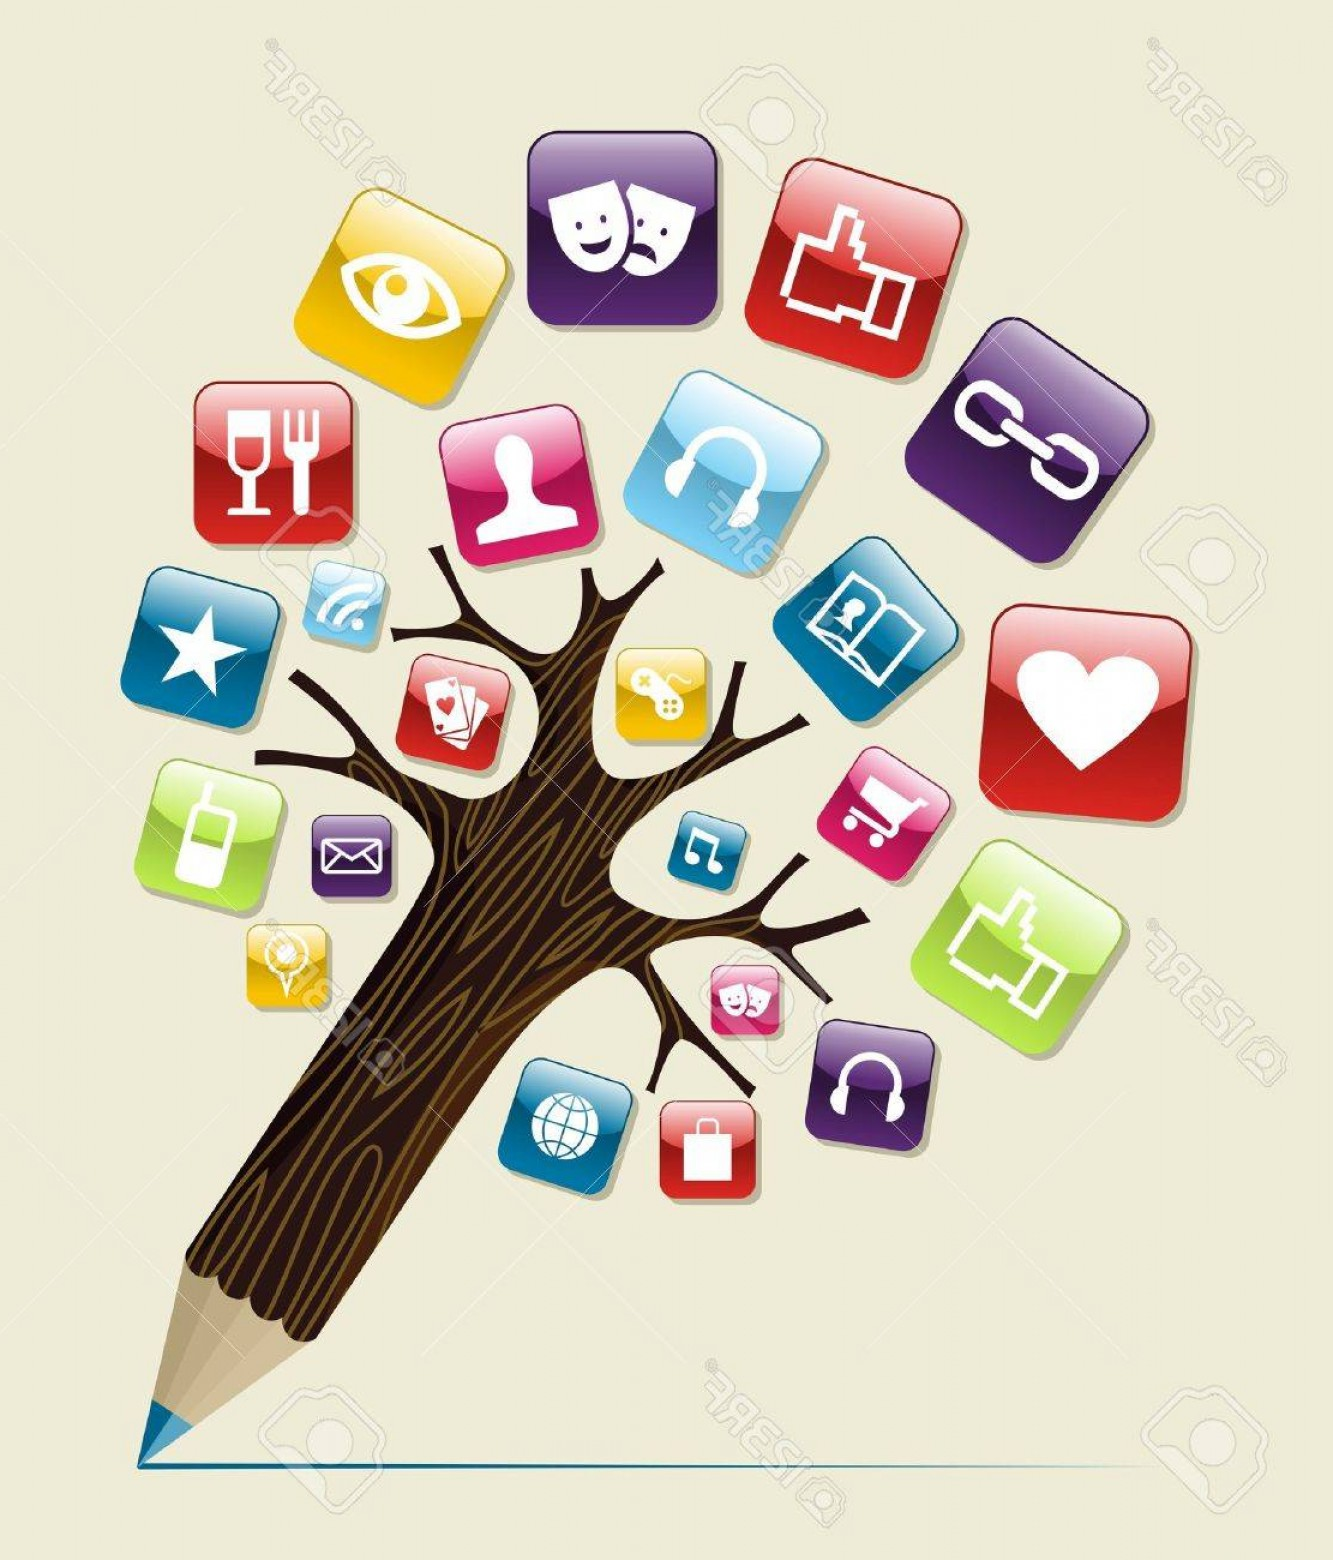 Pencil Icon Vectors Social Media: Photosocial Media Glossy Icons Buttons Concept Pencil Tree Vector Illustration Layered For Easy Manipulat